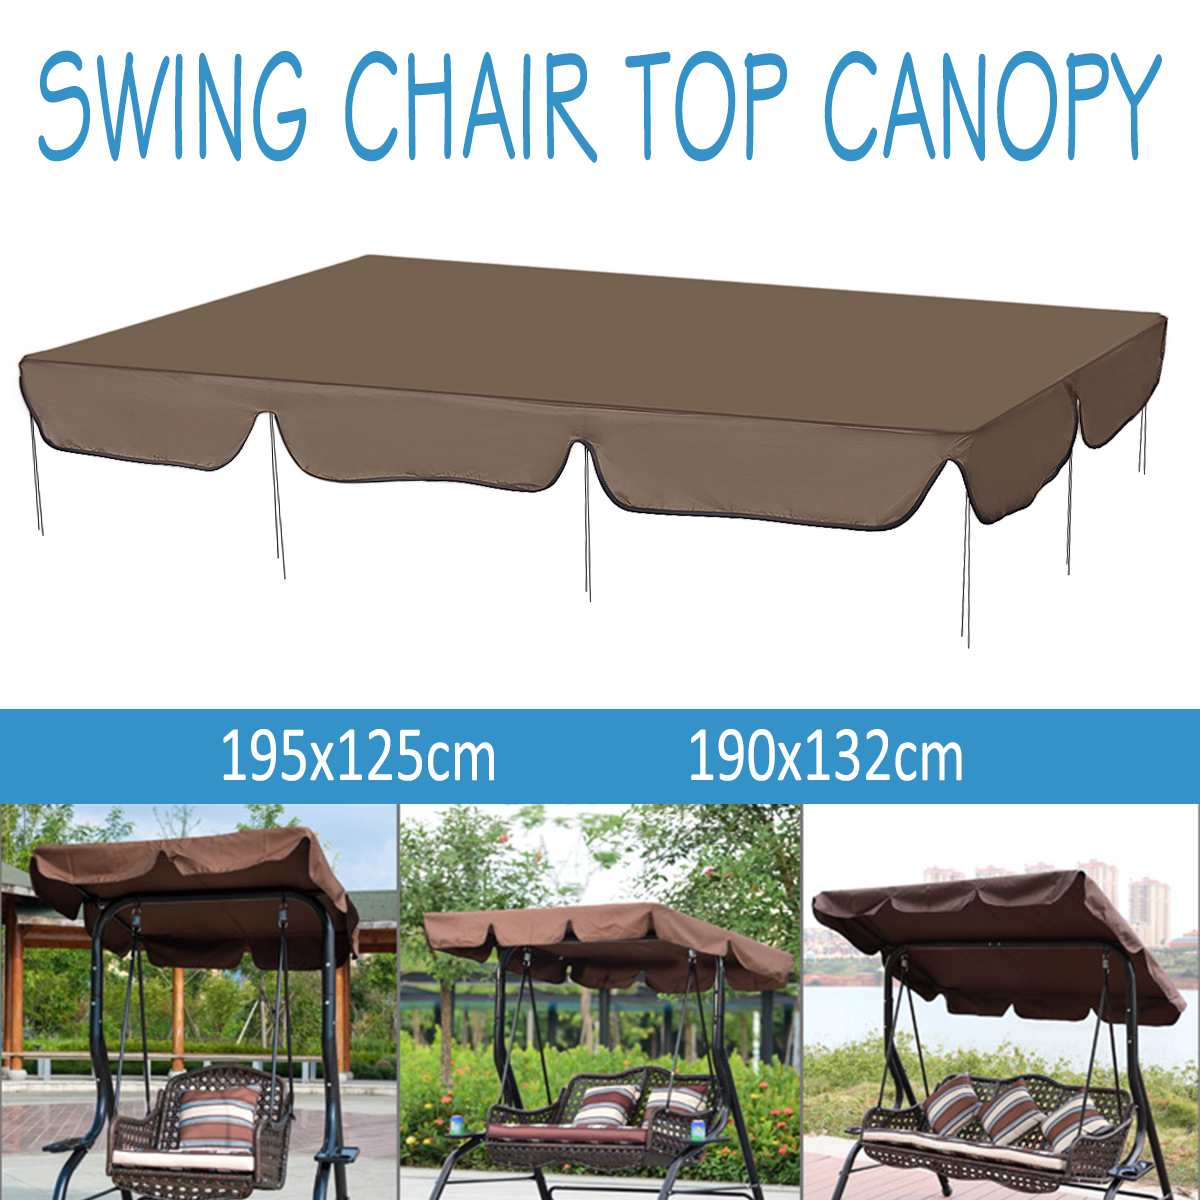 Waterproof Swing Chair Top Cover Awning Outdoor Garden